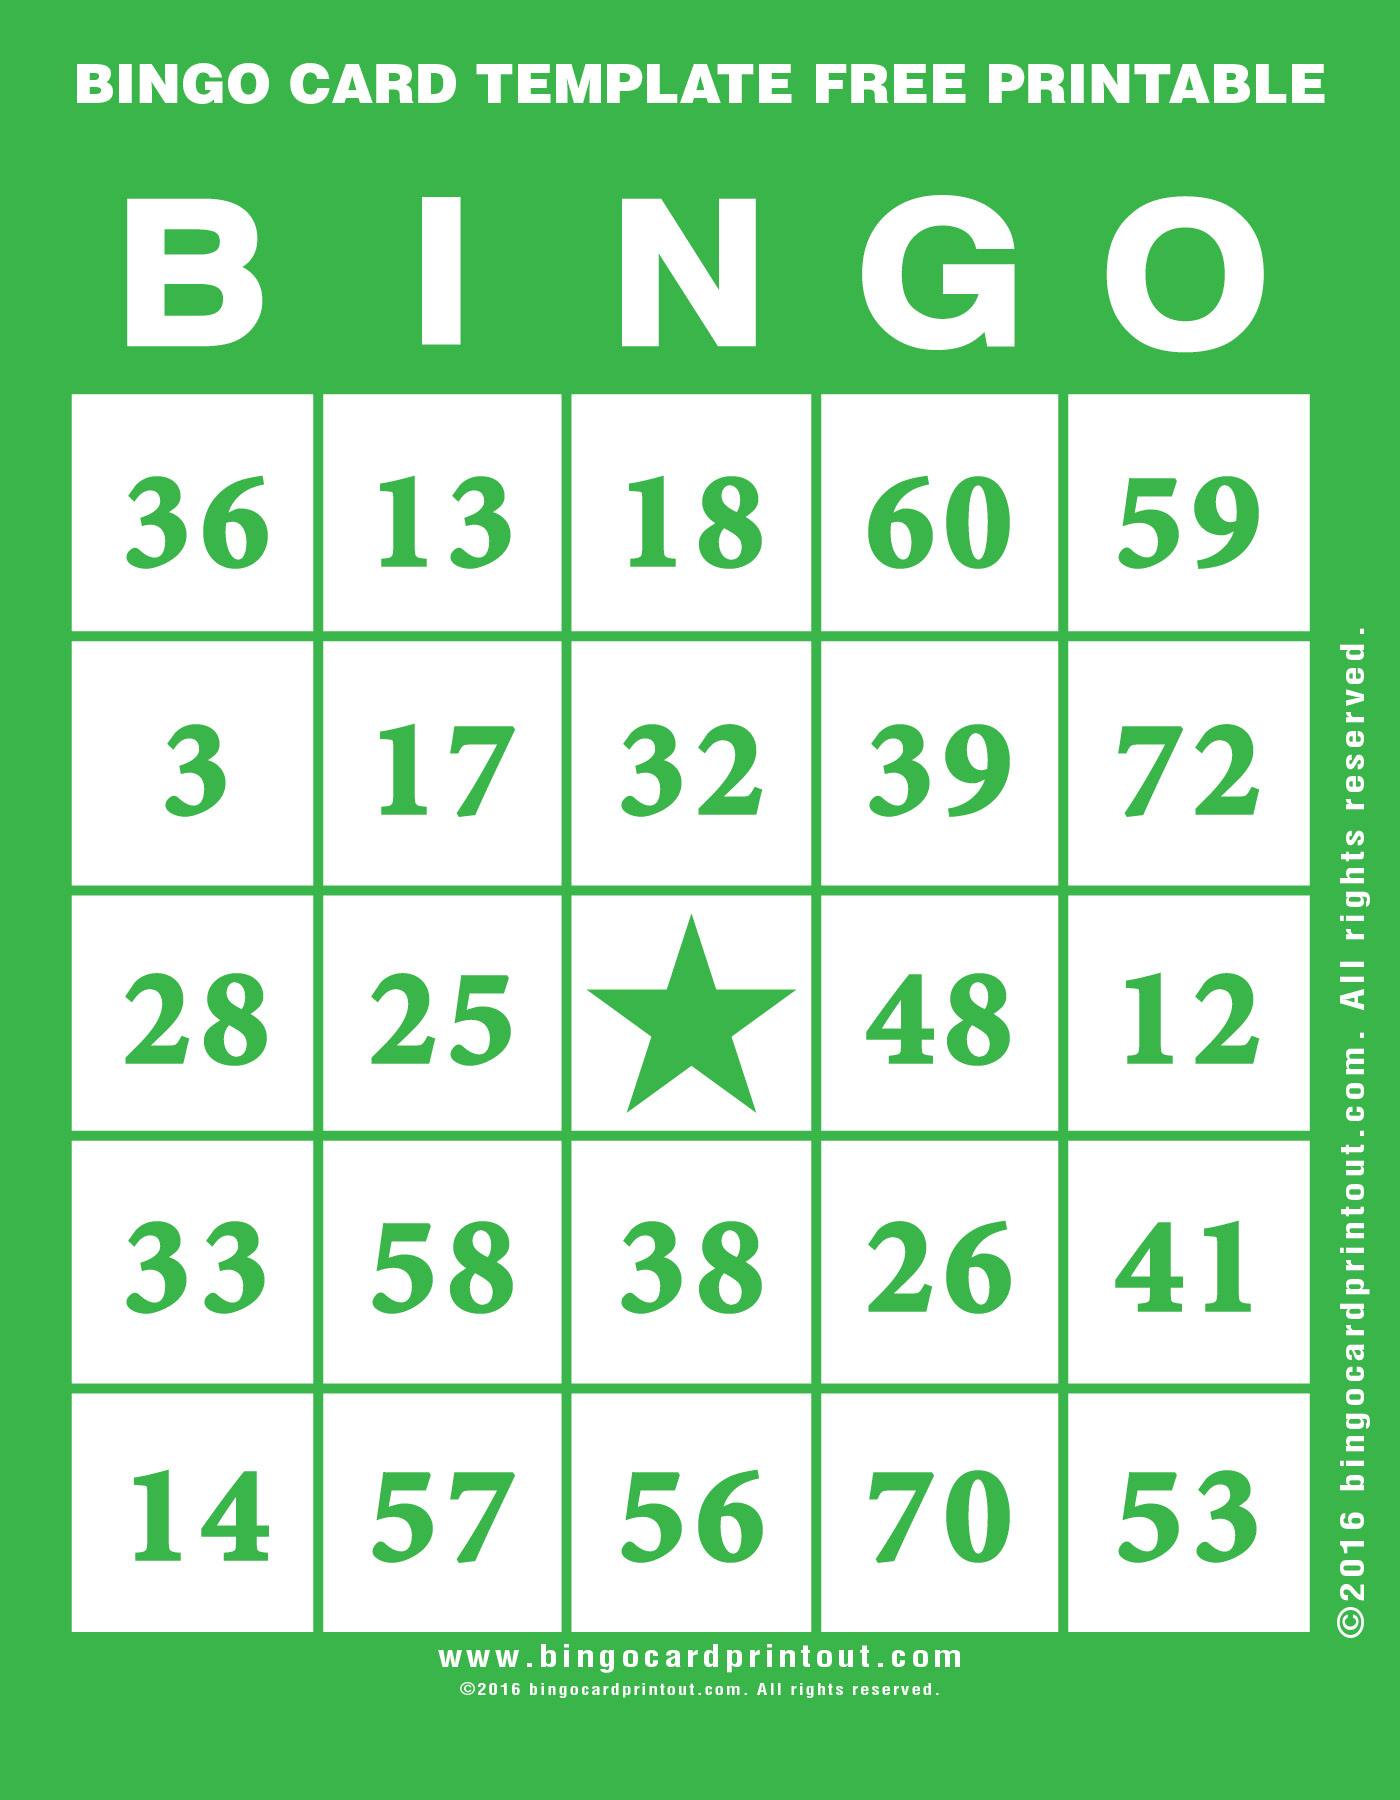 Bingo Card Template Free Printable - Bingocardprintout - Printable Bingo Template Free